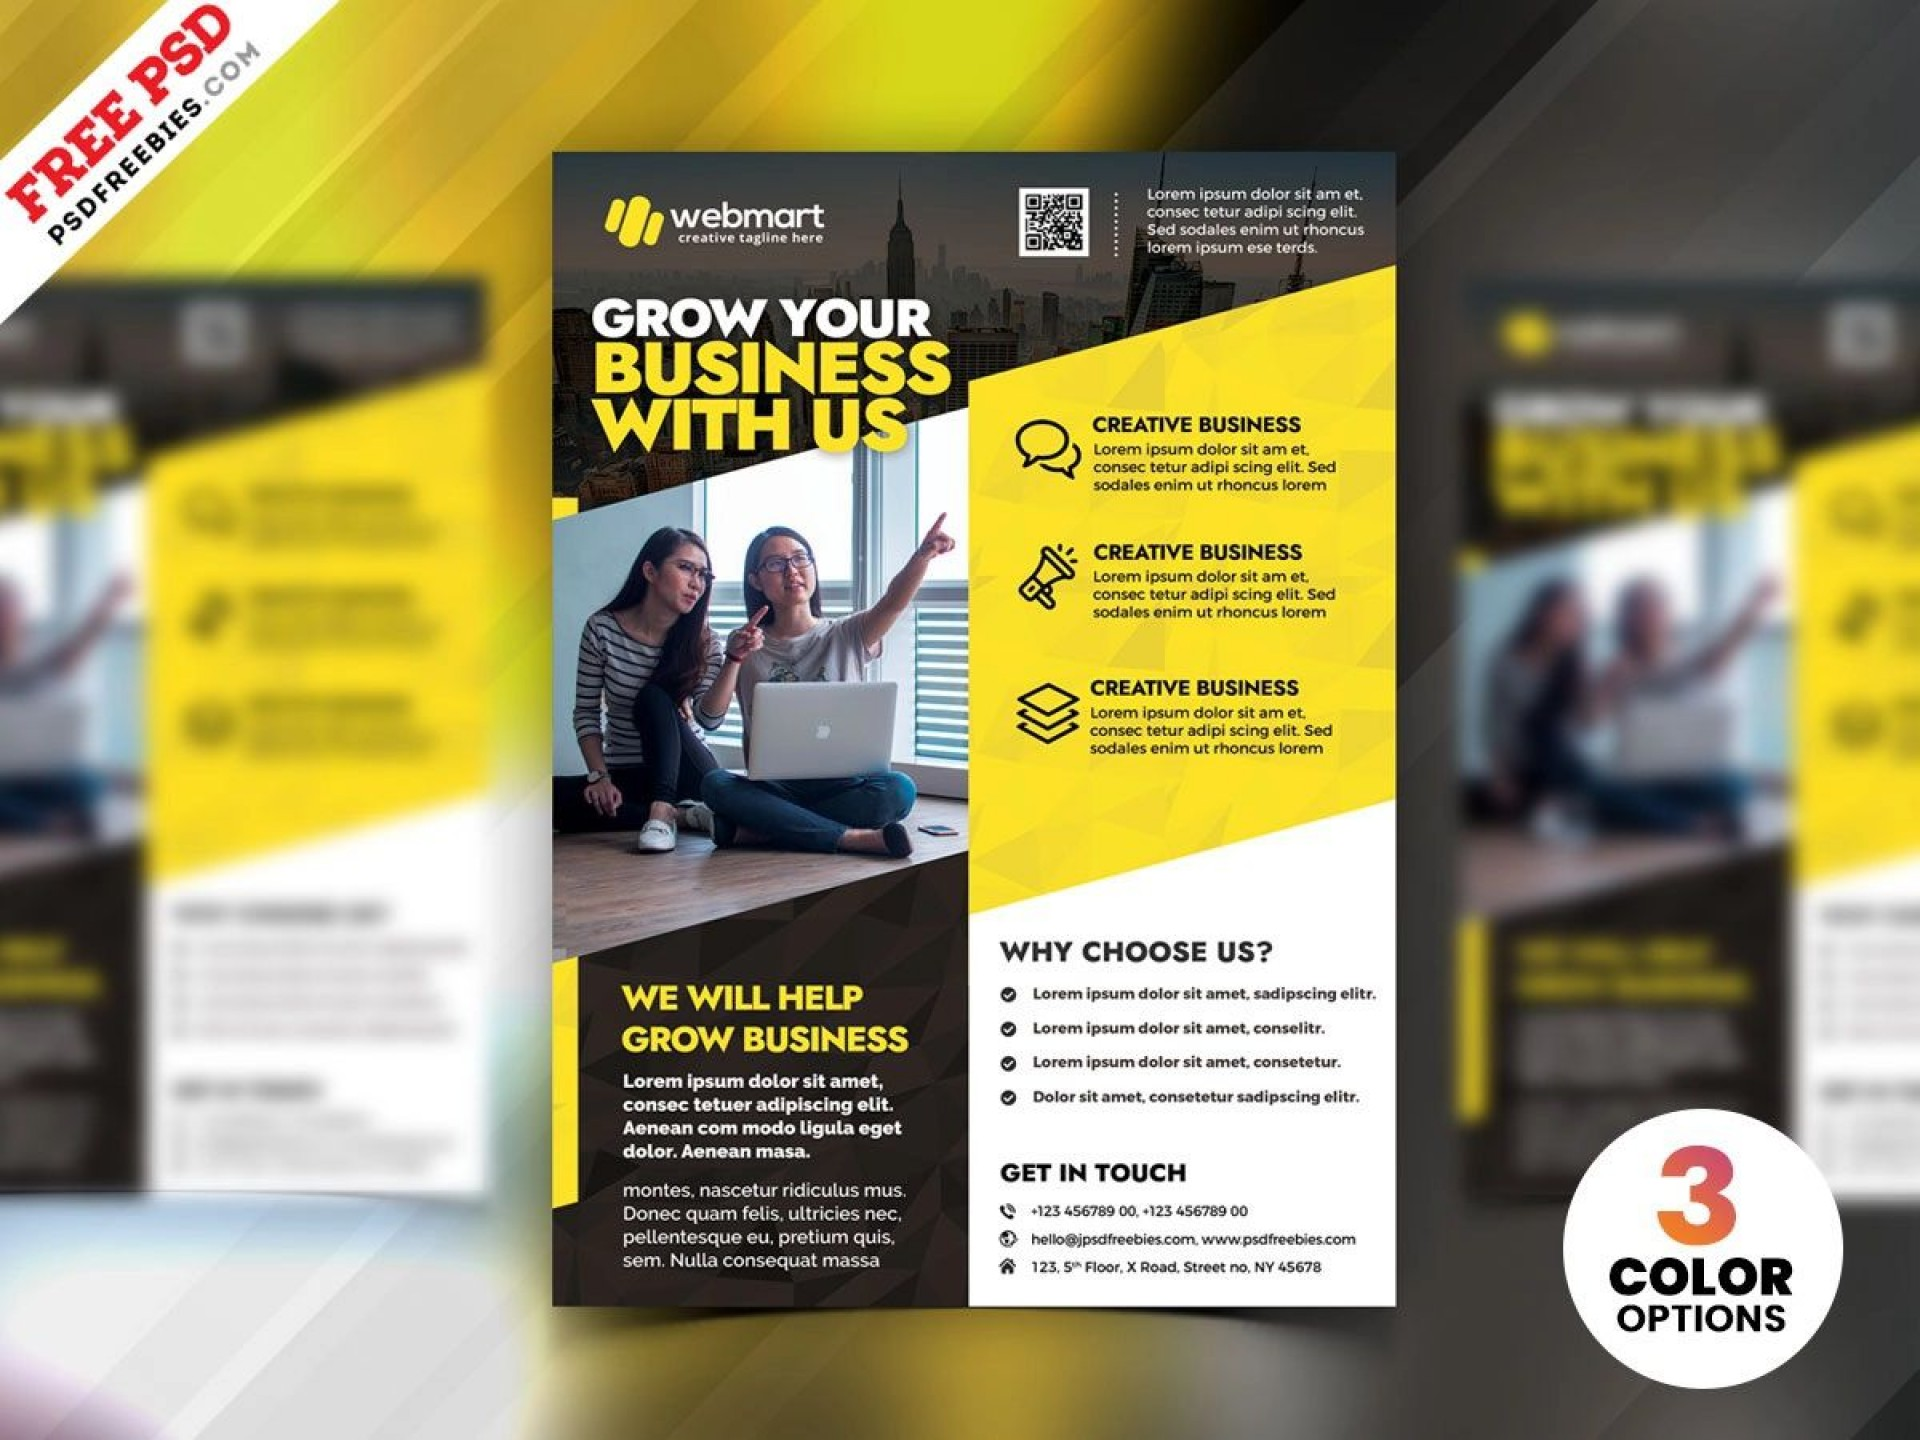 004 Stupendou Free Flyer Design Template Image  Indesign For Word Microsoft1920